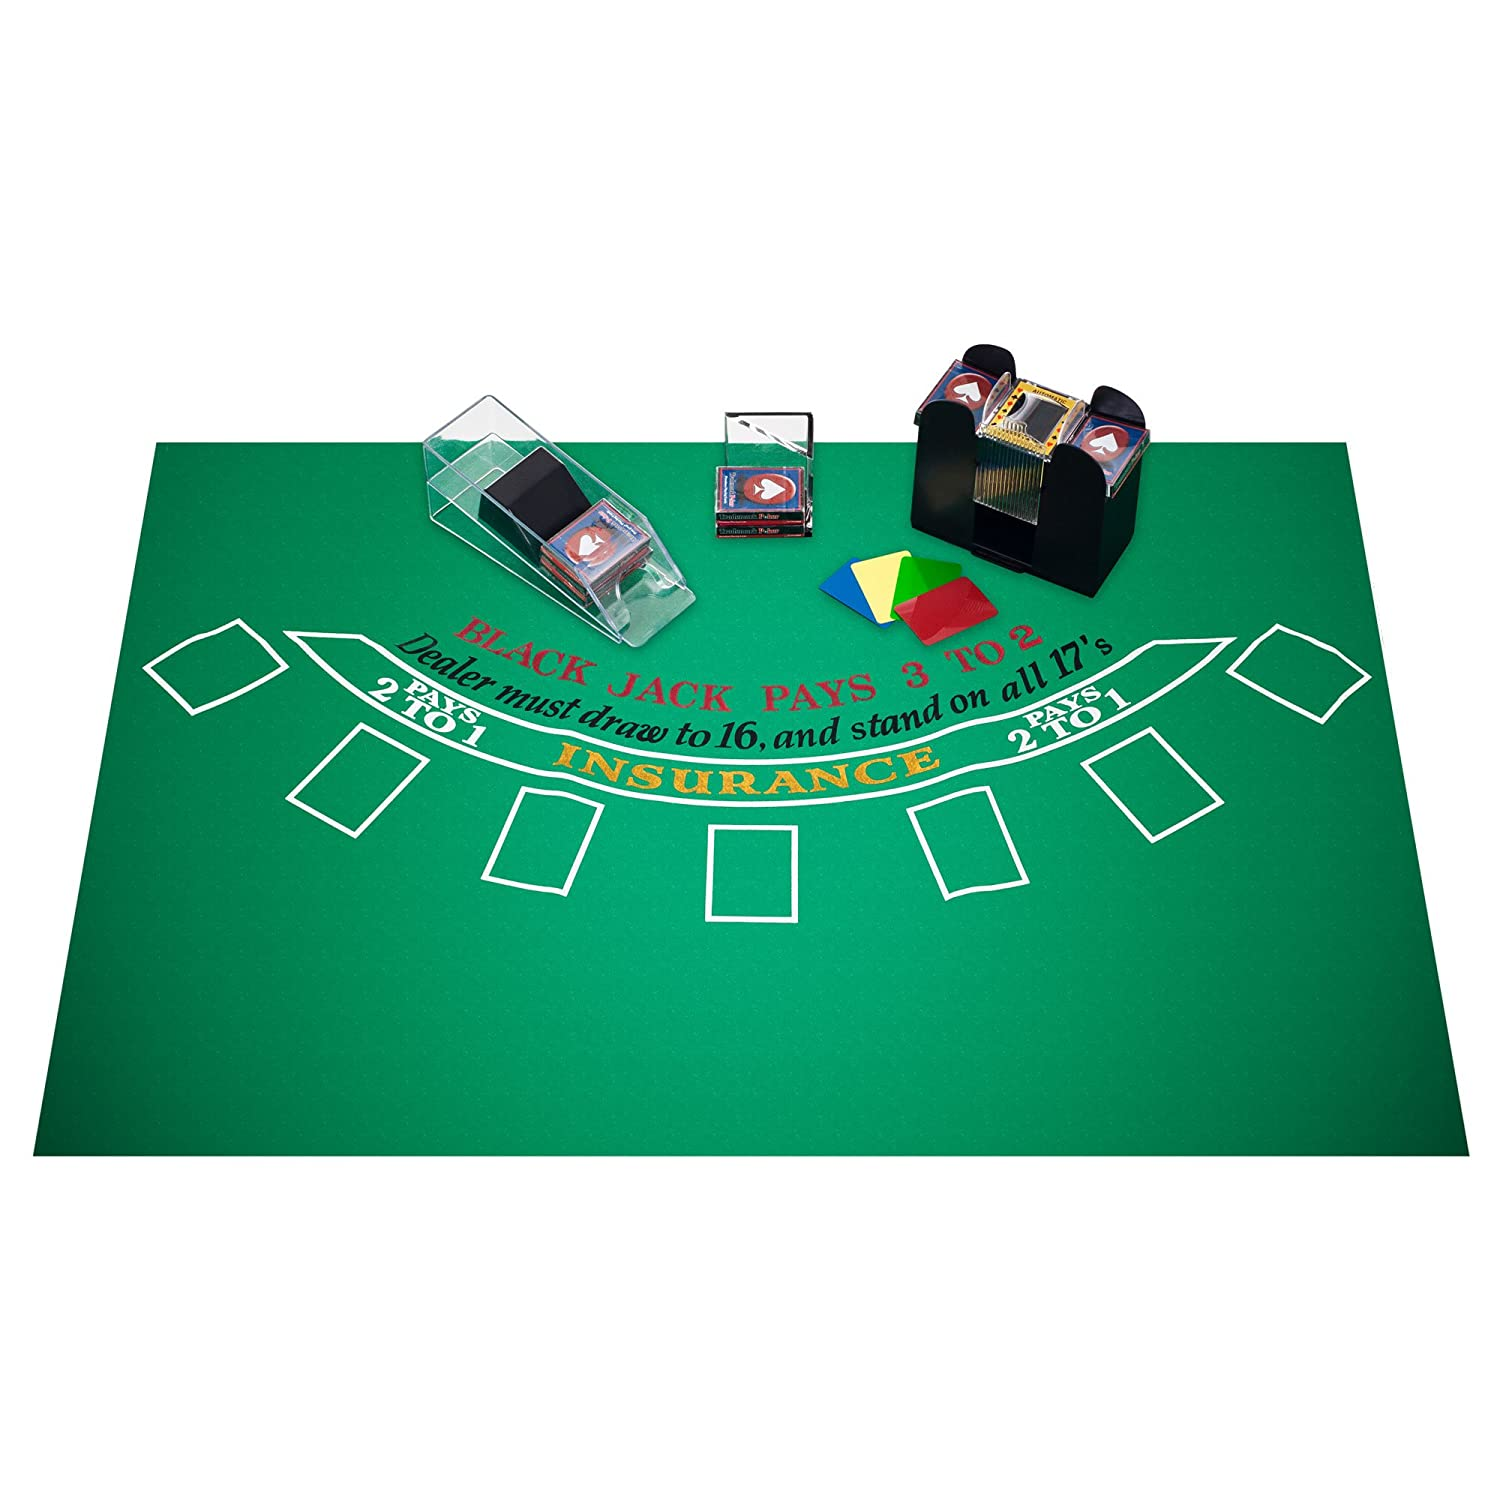 Blackjack table top view - Amazon Com Trademark Blackjack Accessories Set Multi Blackjack Supplies Sports Outdoors